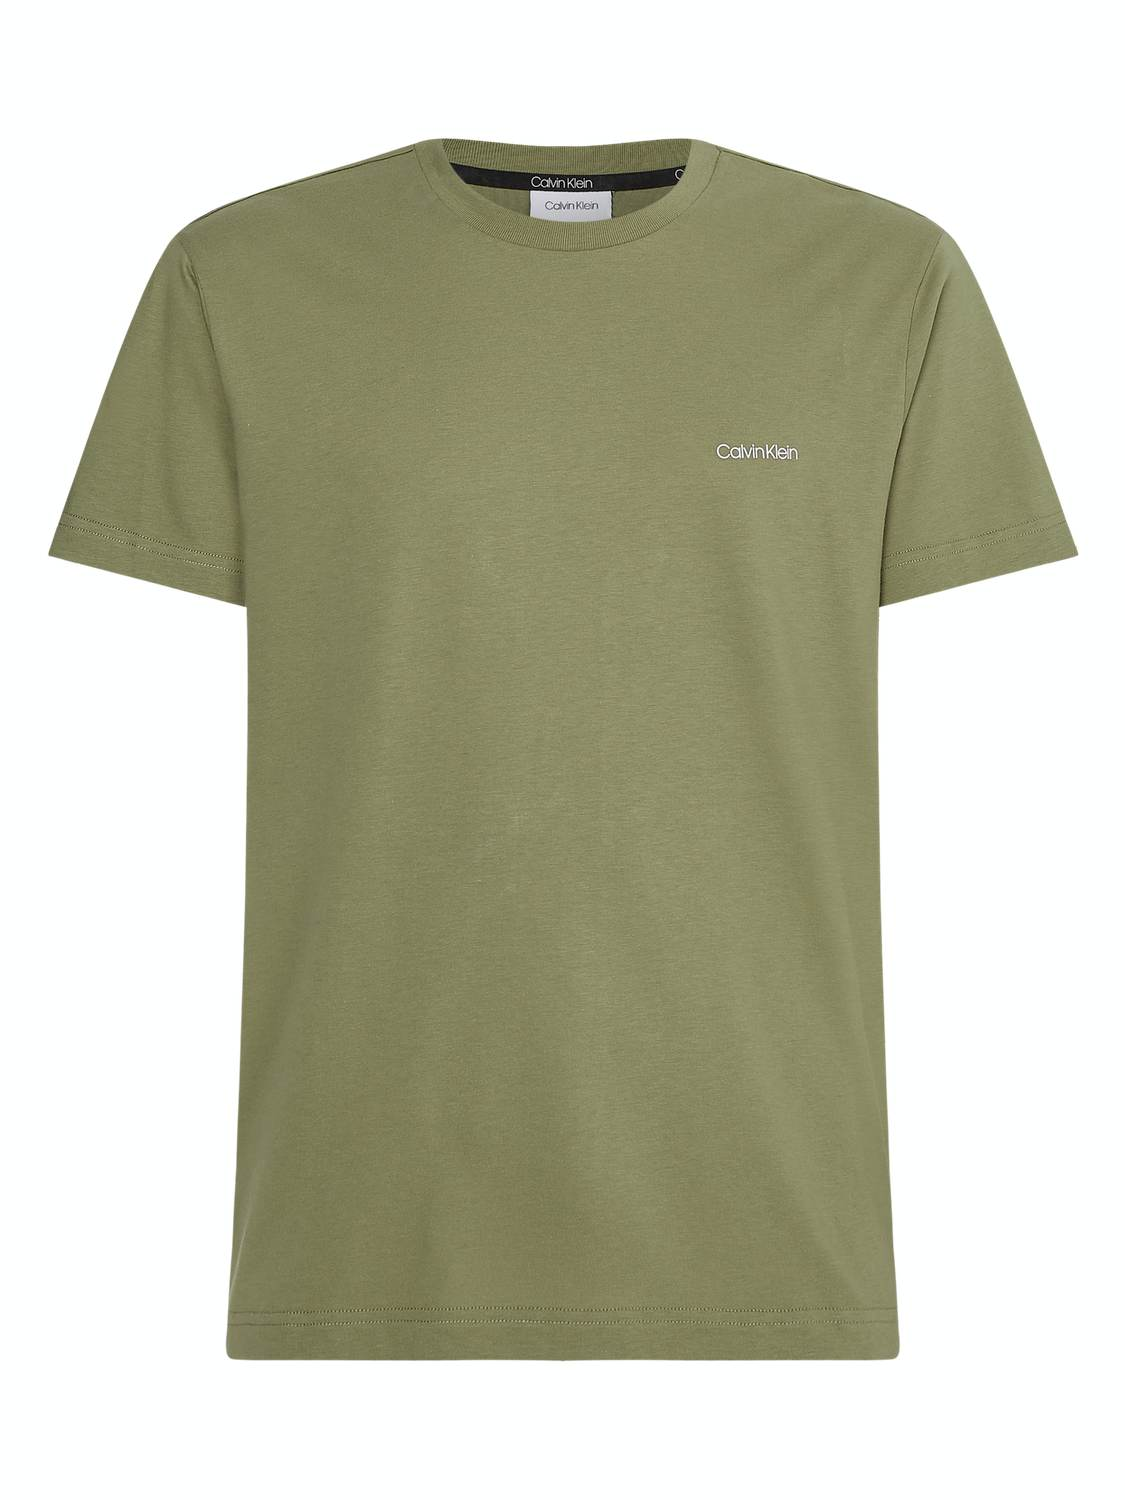 CALVIN KLEIN T-SHIRT CHEST LOGO GREEN | GATE 36 Hobro